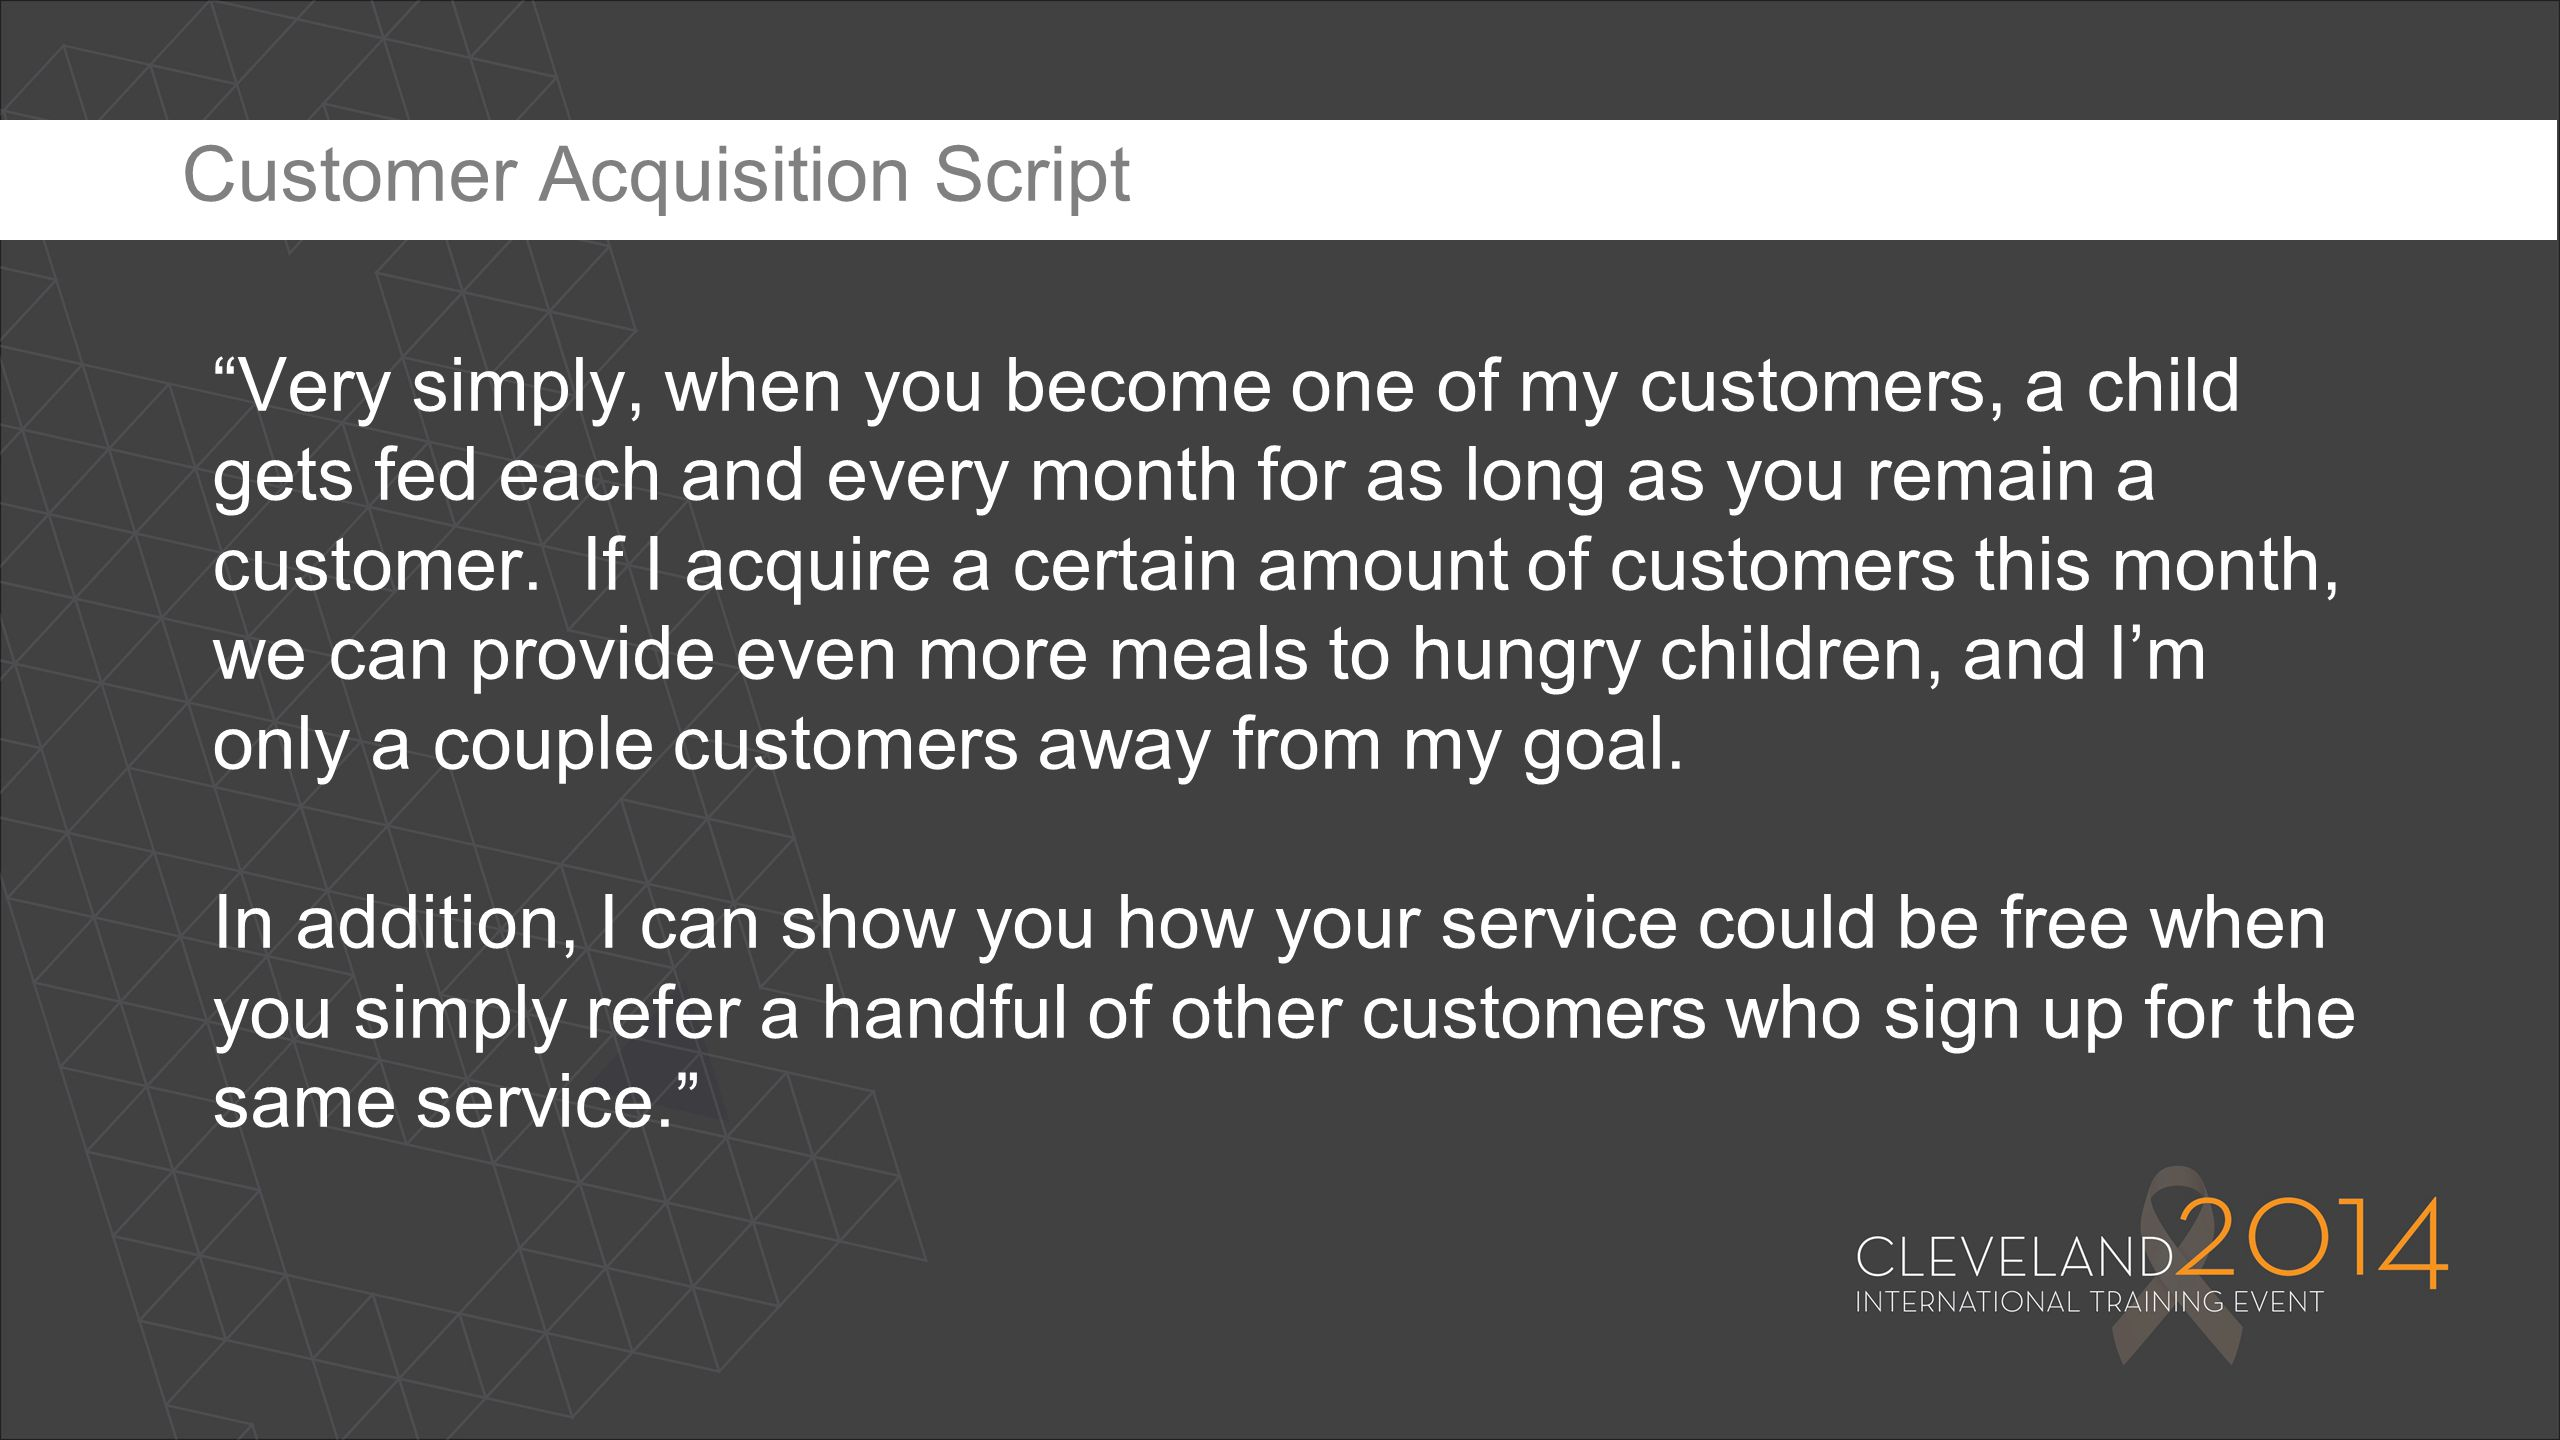 Customer Acquisition Script